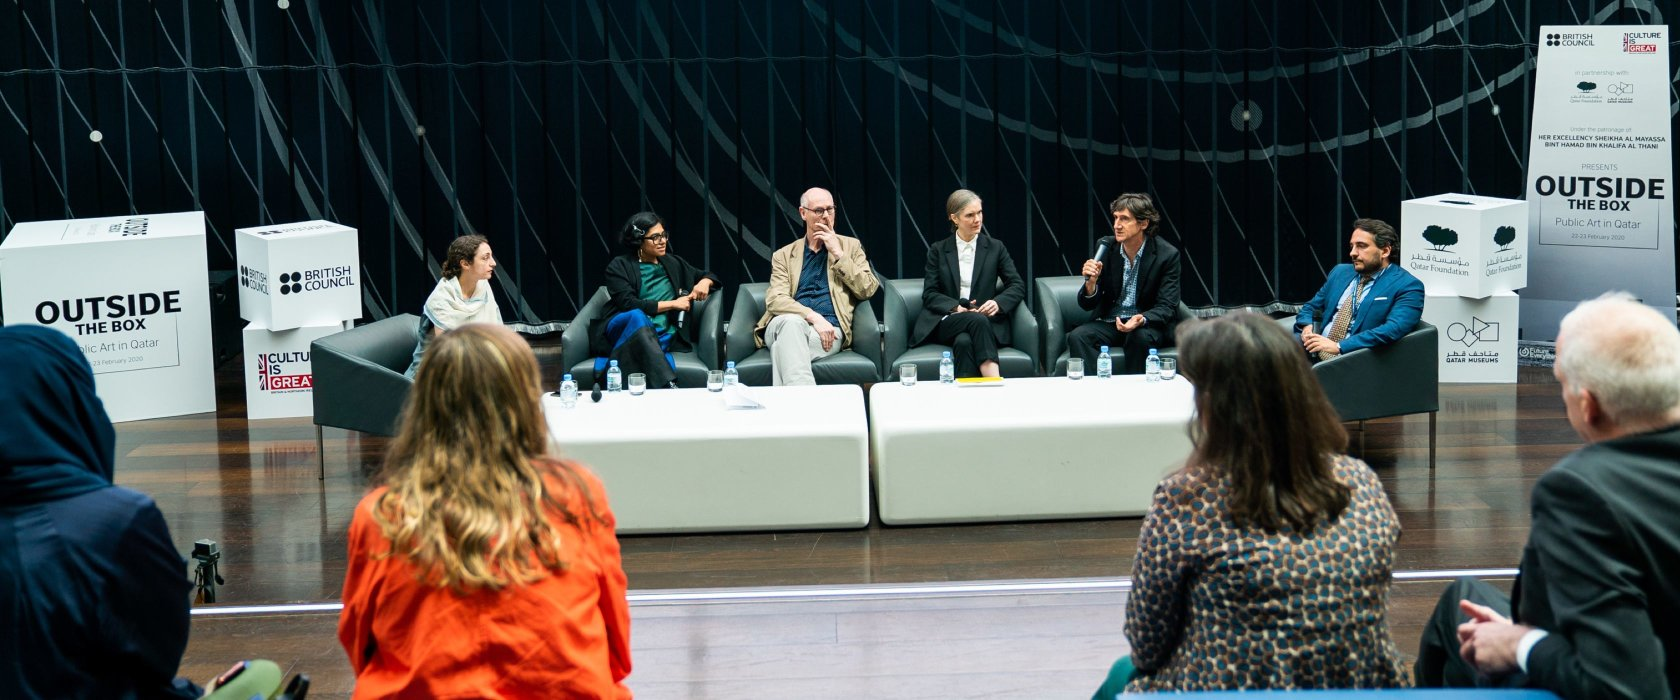 Experts explore the meaning and power of public art as QF hosts international forum